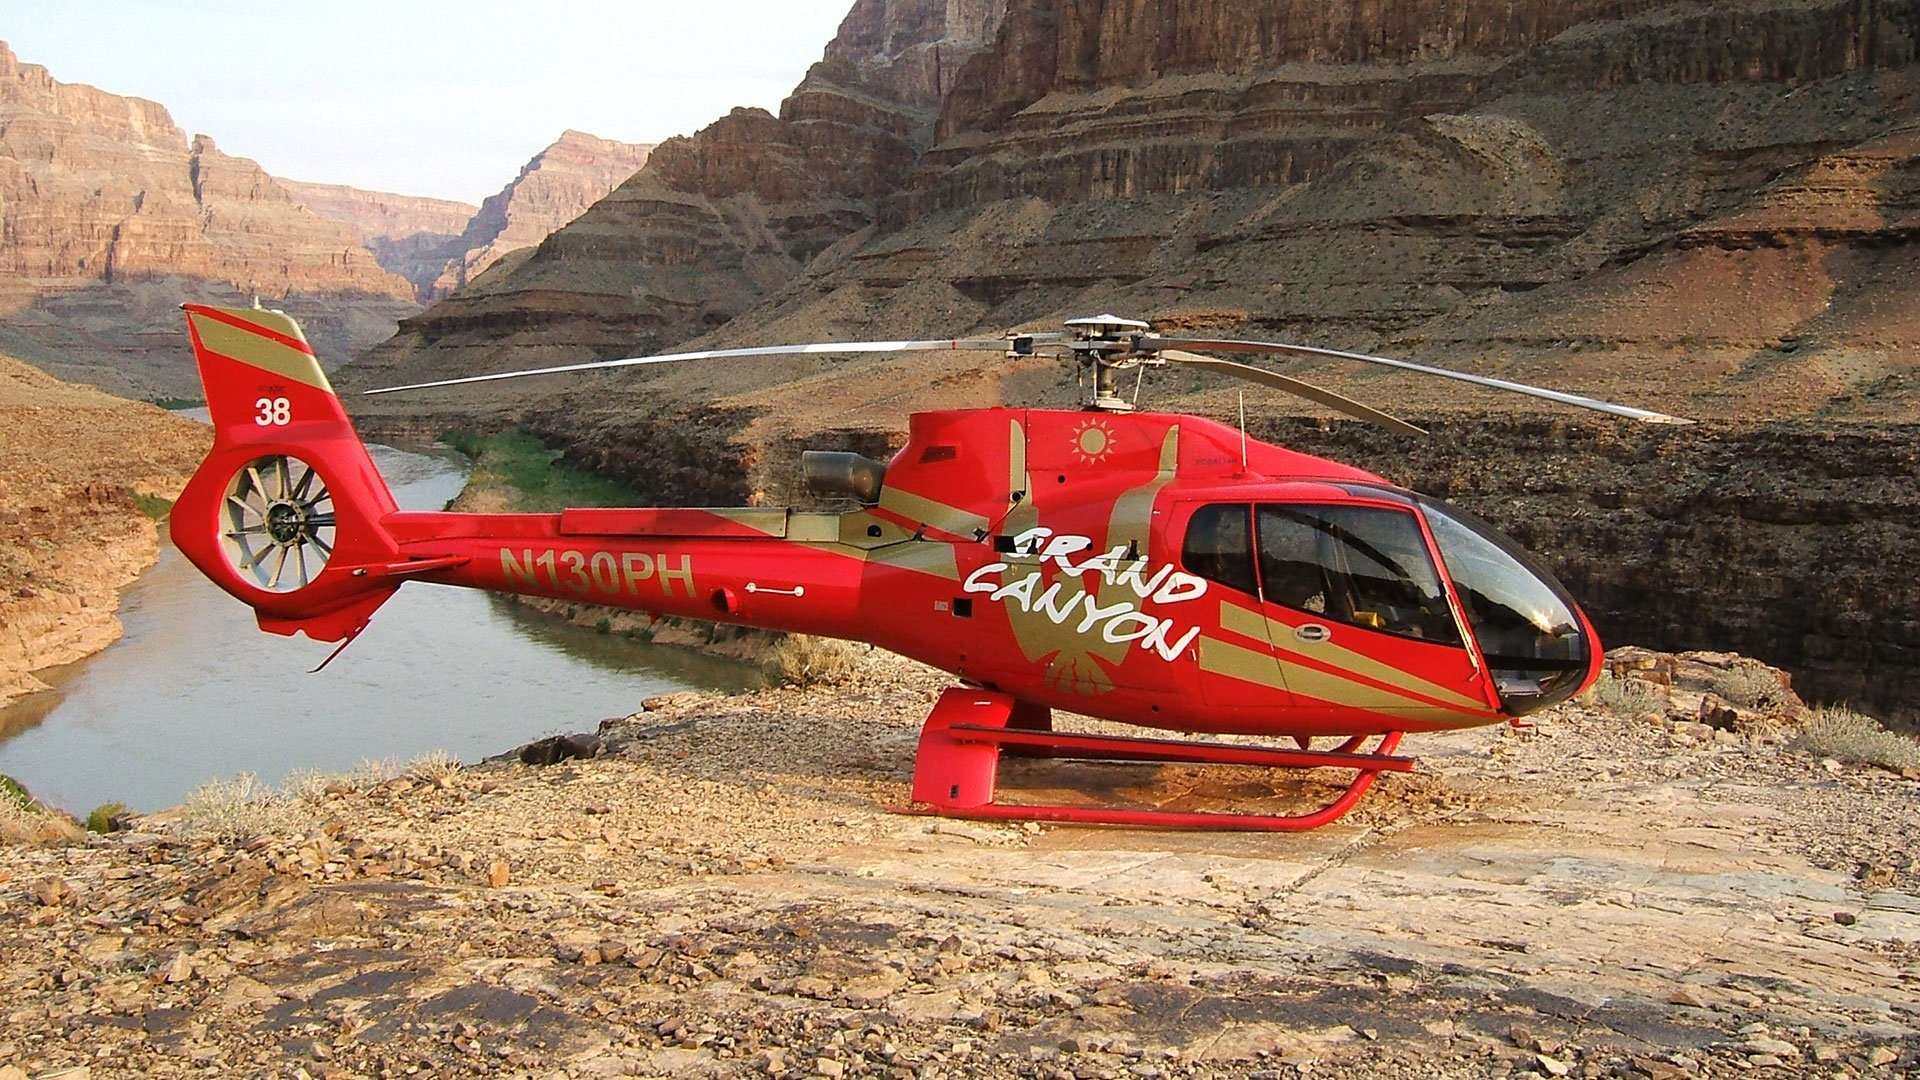 Helicóptero EC-130 pousado no fundo do Grand Canyon, com o Colorado River ao fundo